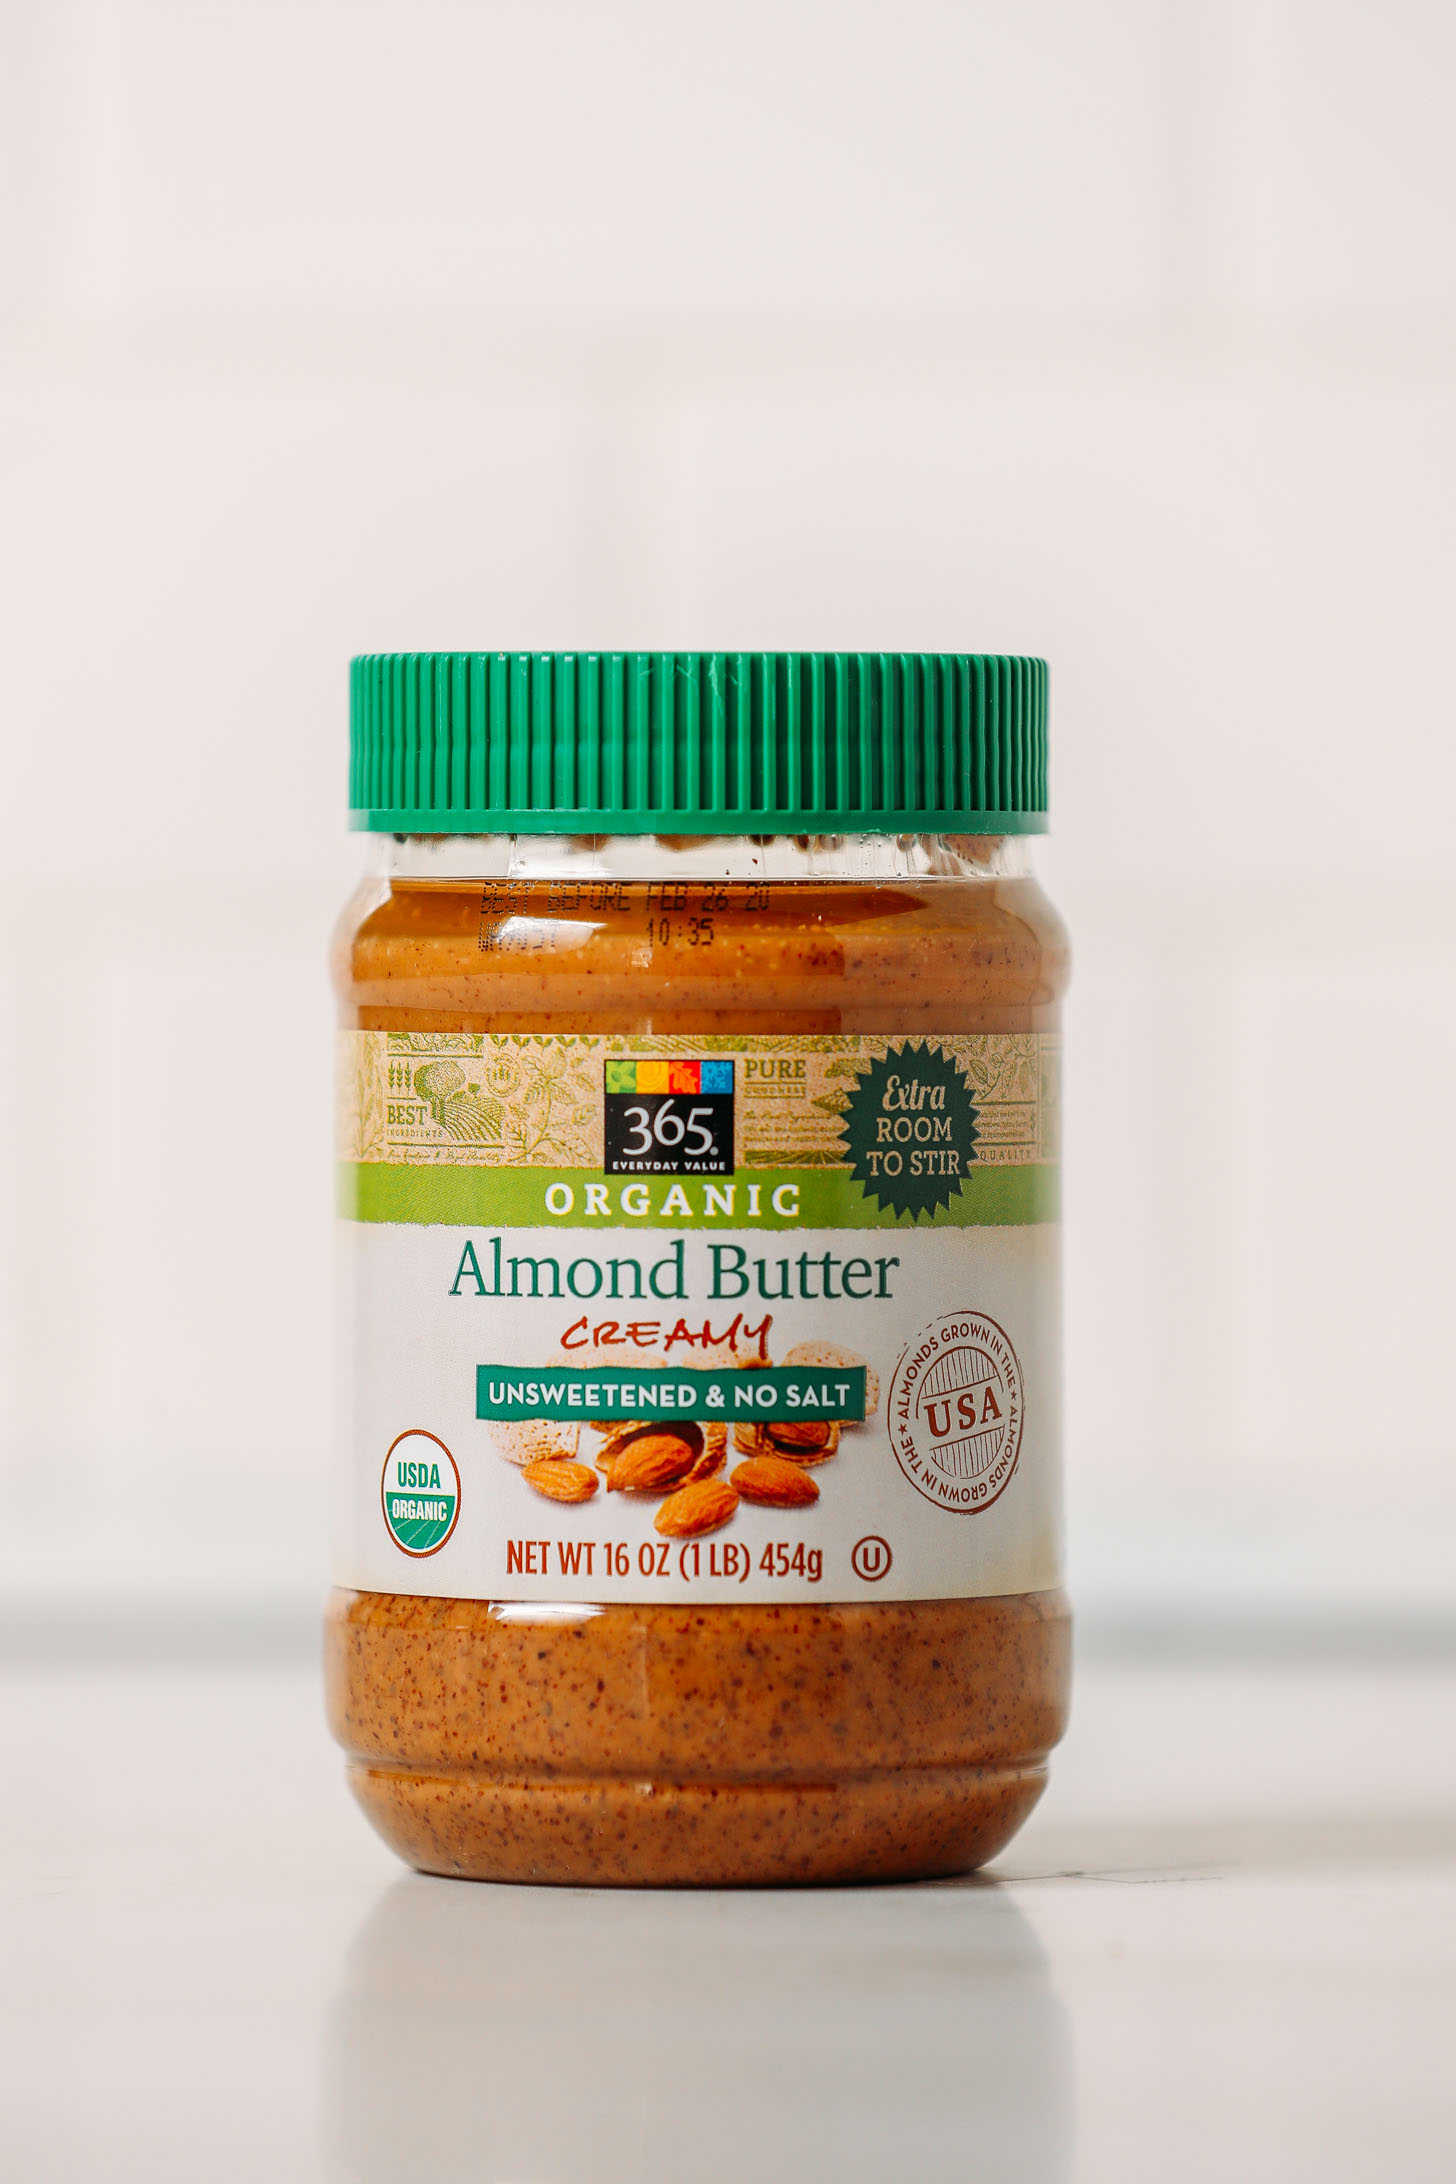 Jar of Whole Foods 365 Organic Almond Butter for our review of popular conventional and organic almond butter brands